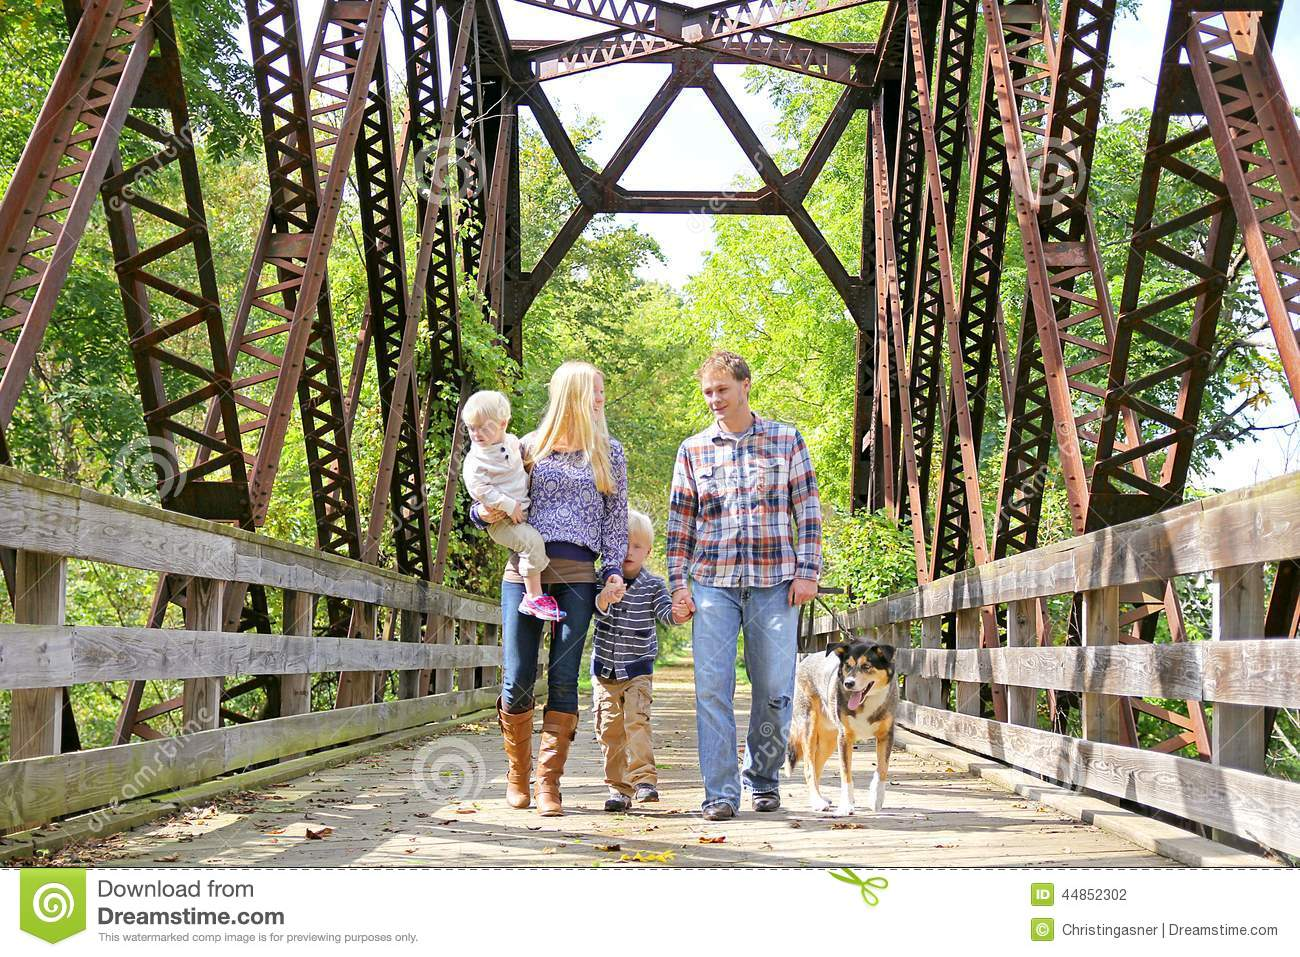 happy-family-four-people-walking-dog-outside-bridge-including-mother-father-young-child-toddler-brother-across-44852302.jpg